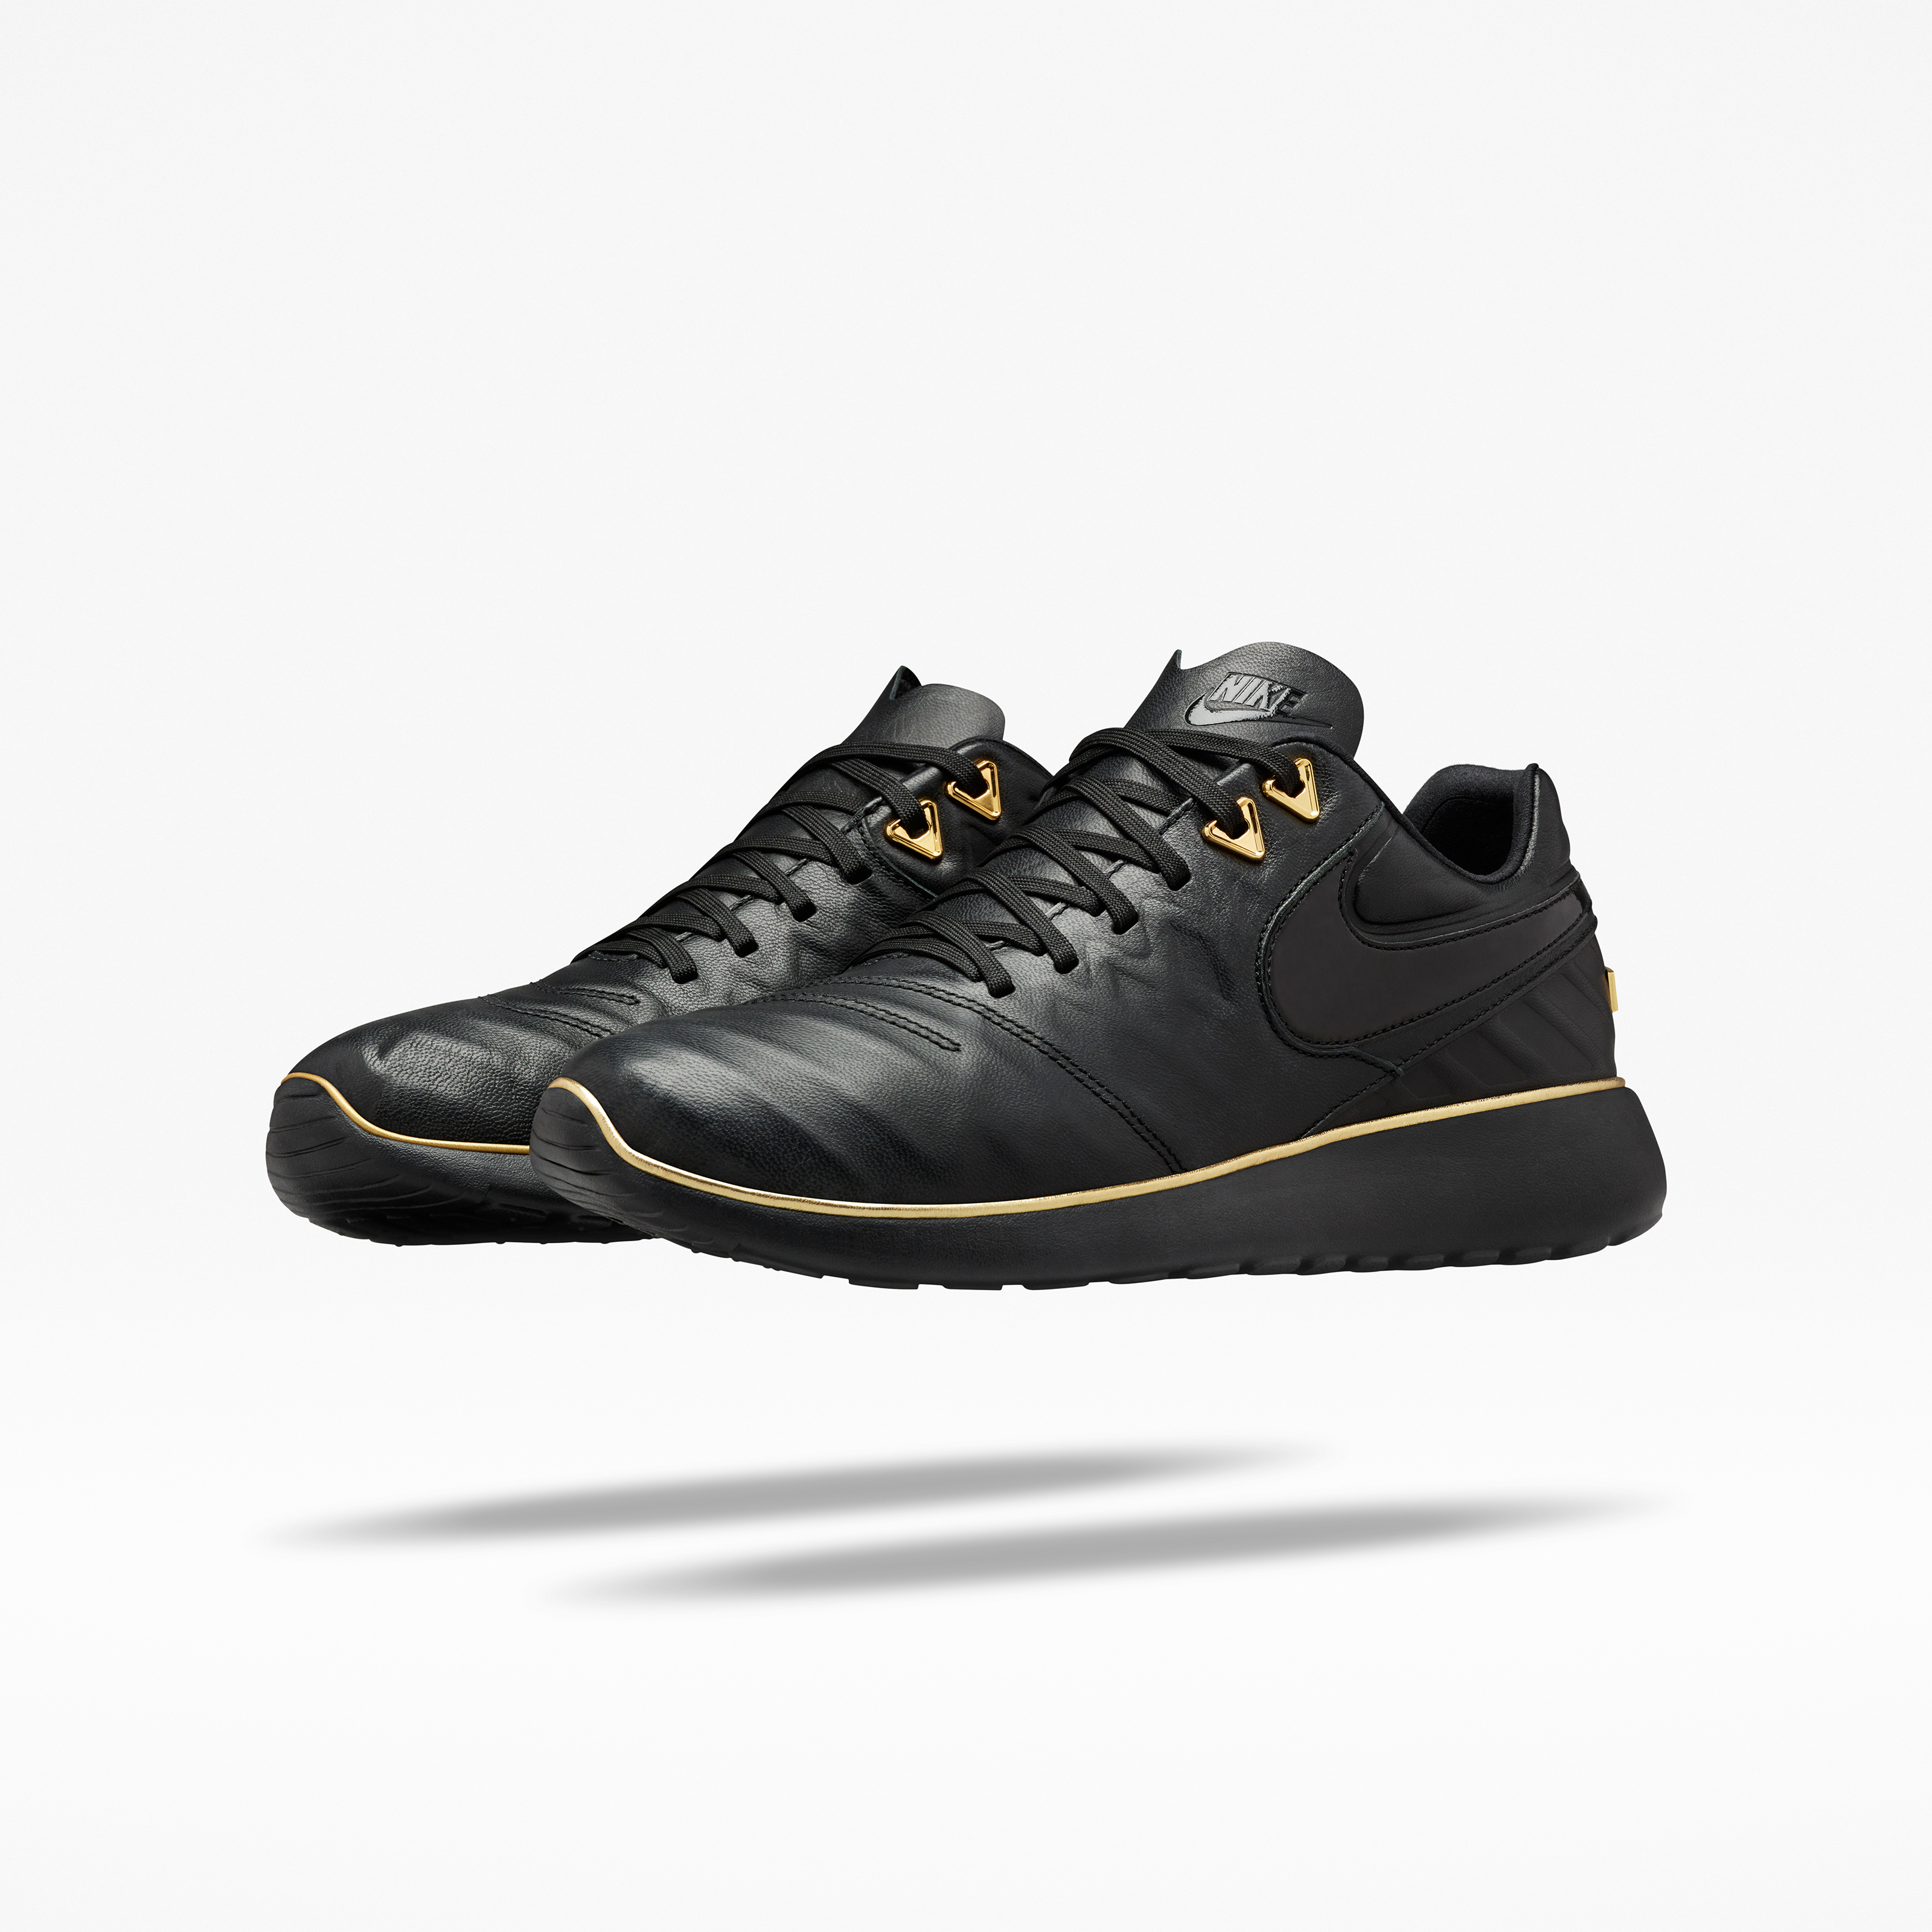 Nike Roshe Courir Auto Touche D'or Blanc Noir magasin d'usine Manchester rabais grande vente gkLcy3Yb1f